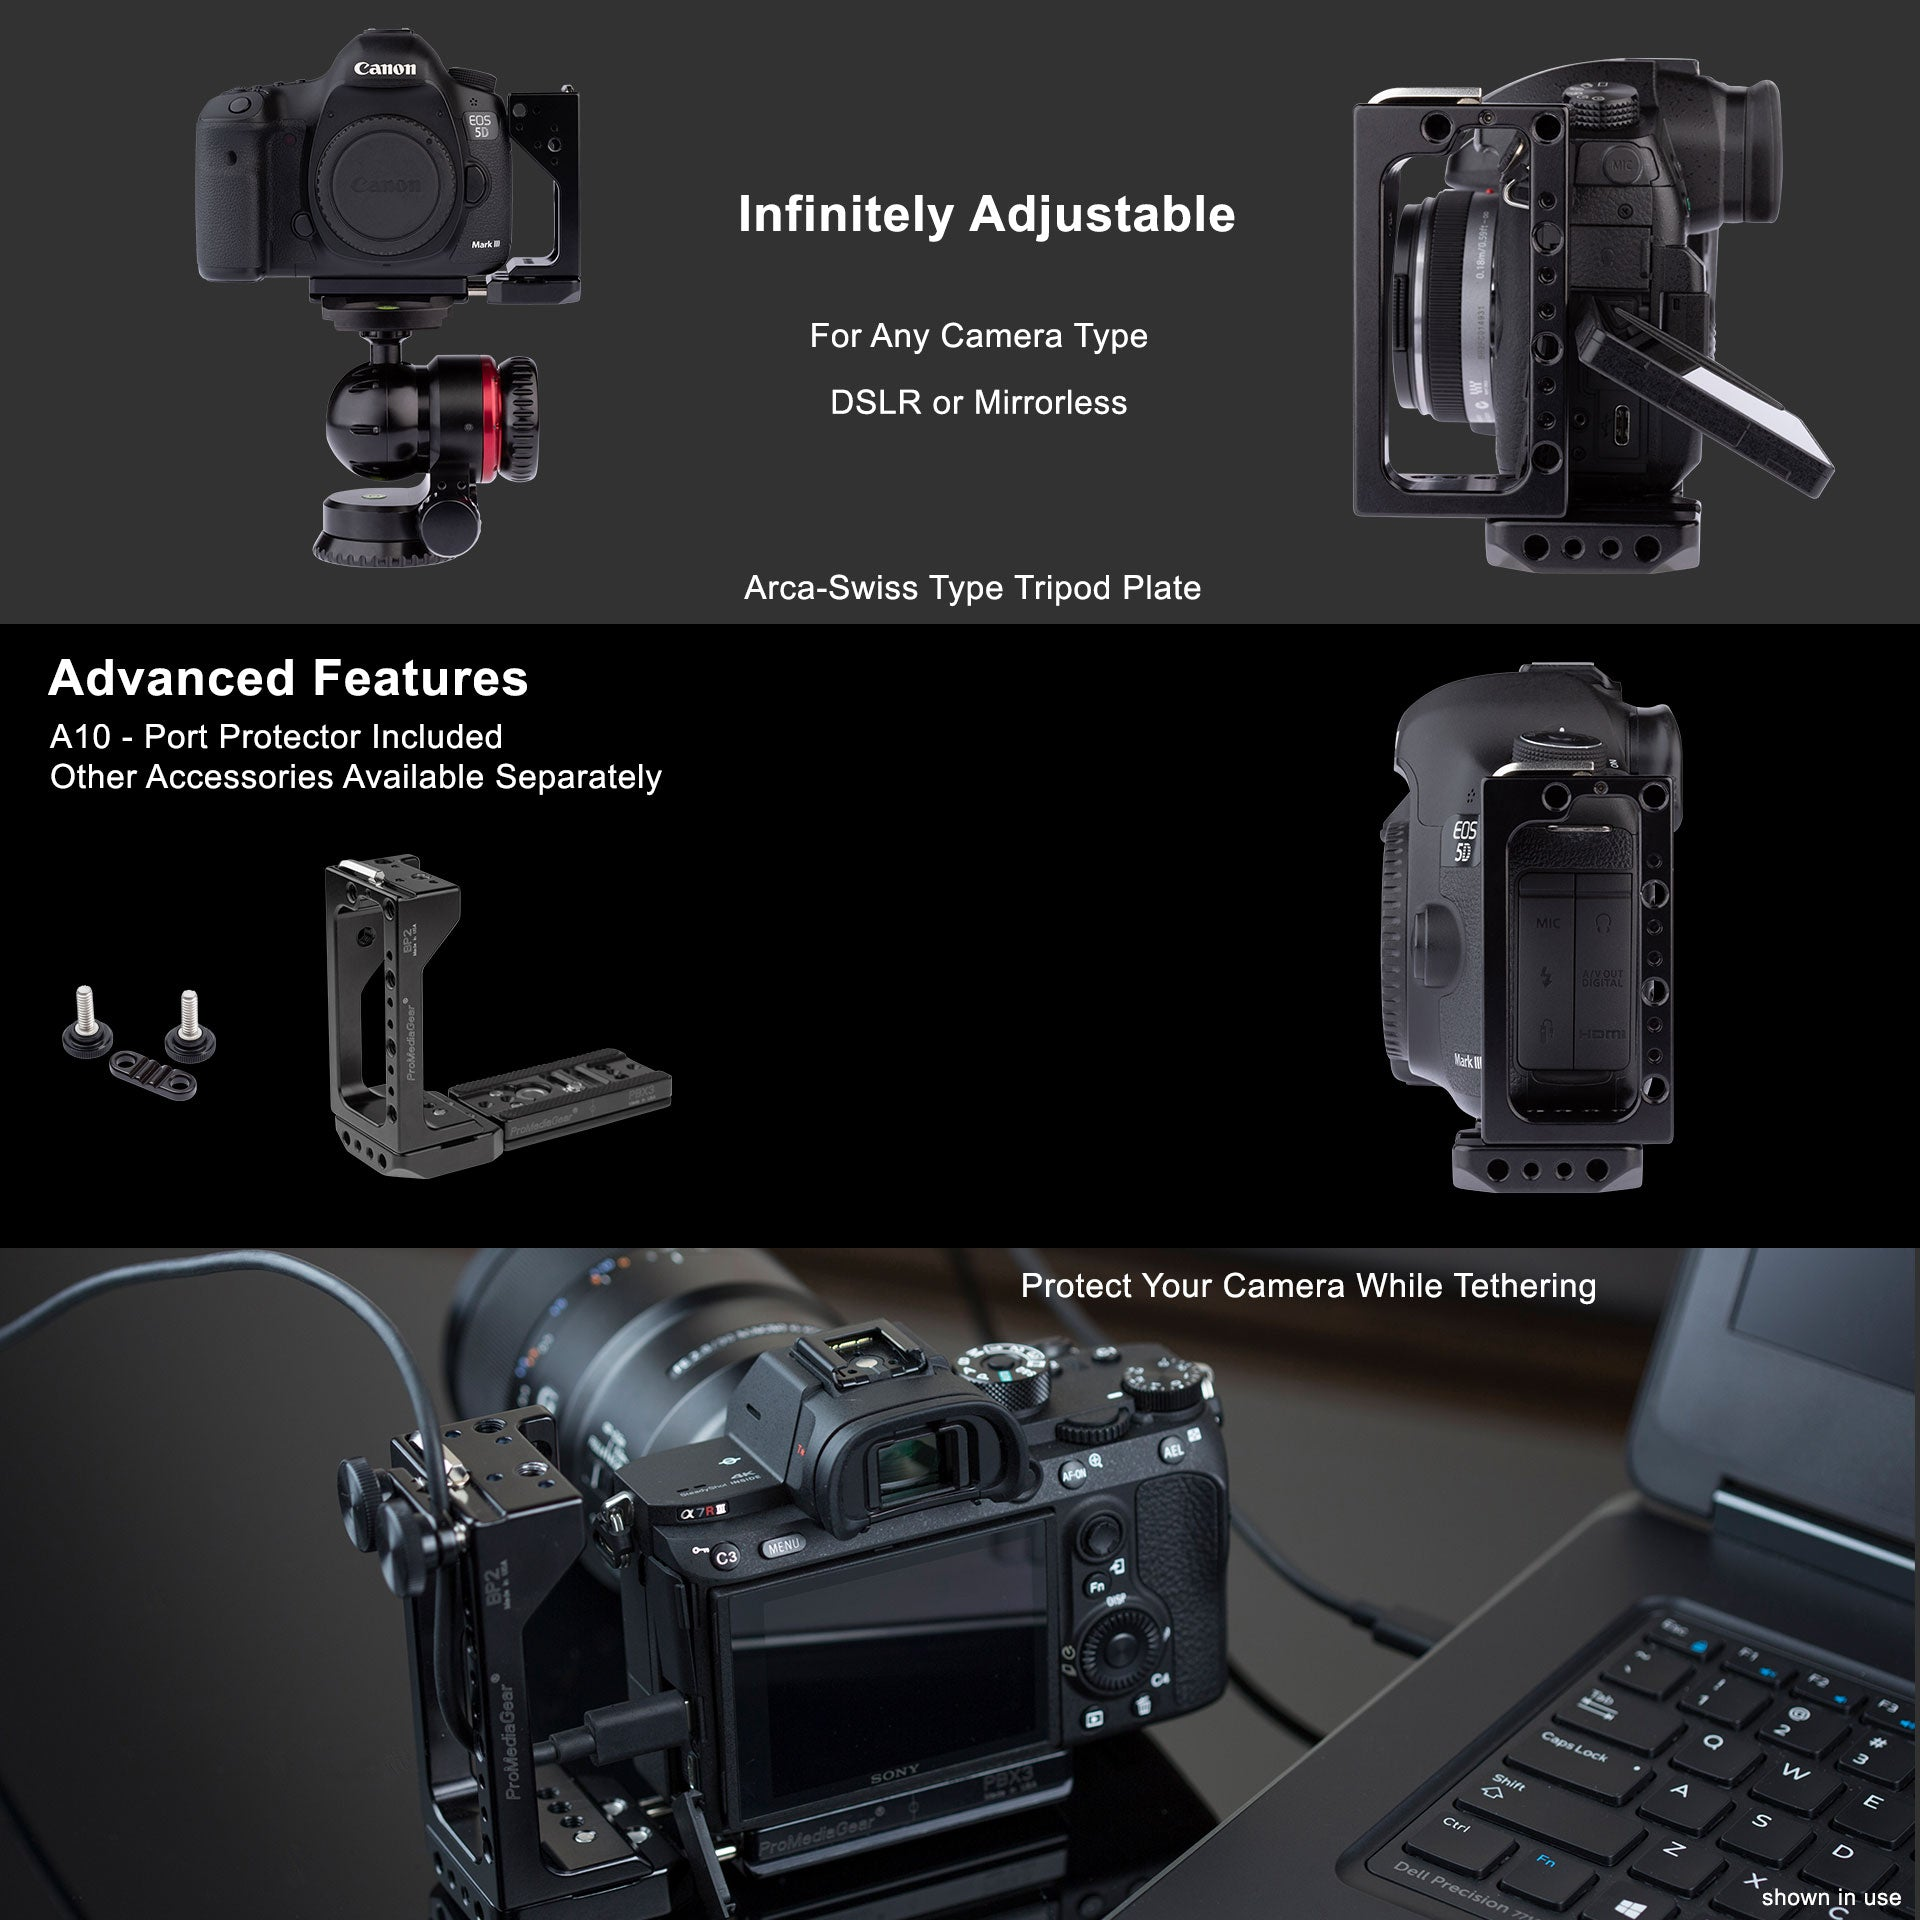 Camera HDMI USB Tethering Jerk Stopper Port Protector for Sony A7 A7r A7s Mark II III and DSLR Canon 5D Mark IV III Nikon Z6 Z7 Mirrorless